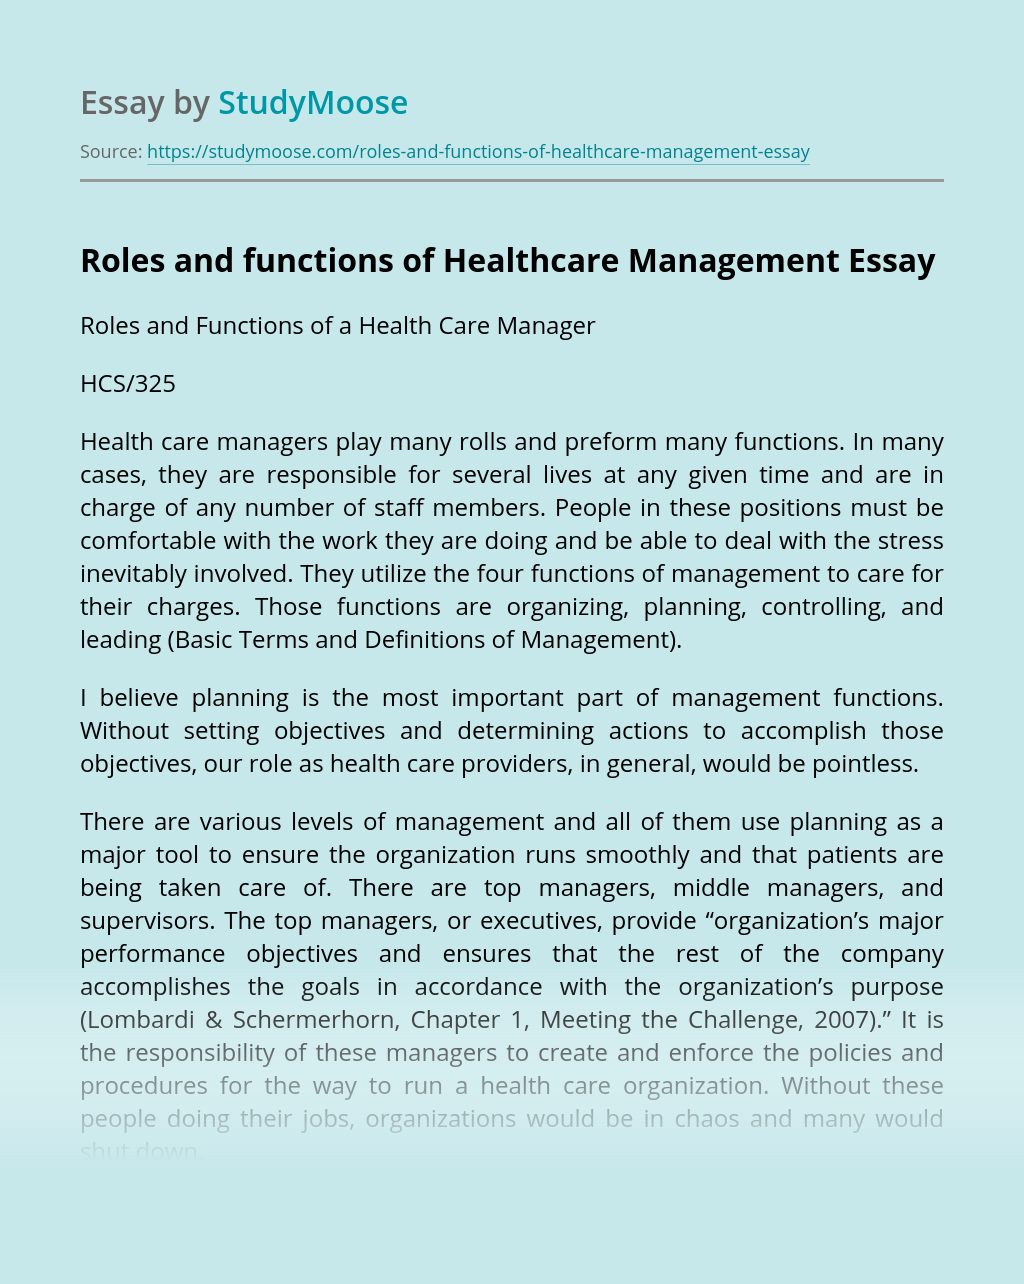 Roles and functions of Healthcare Management